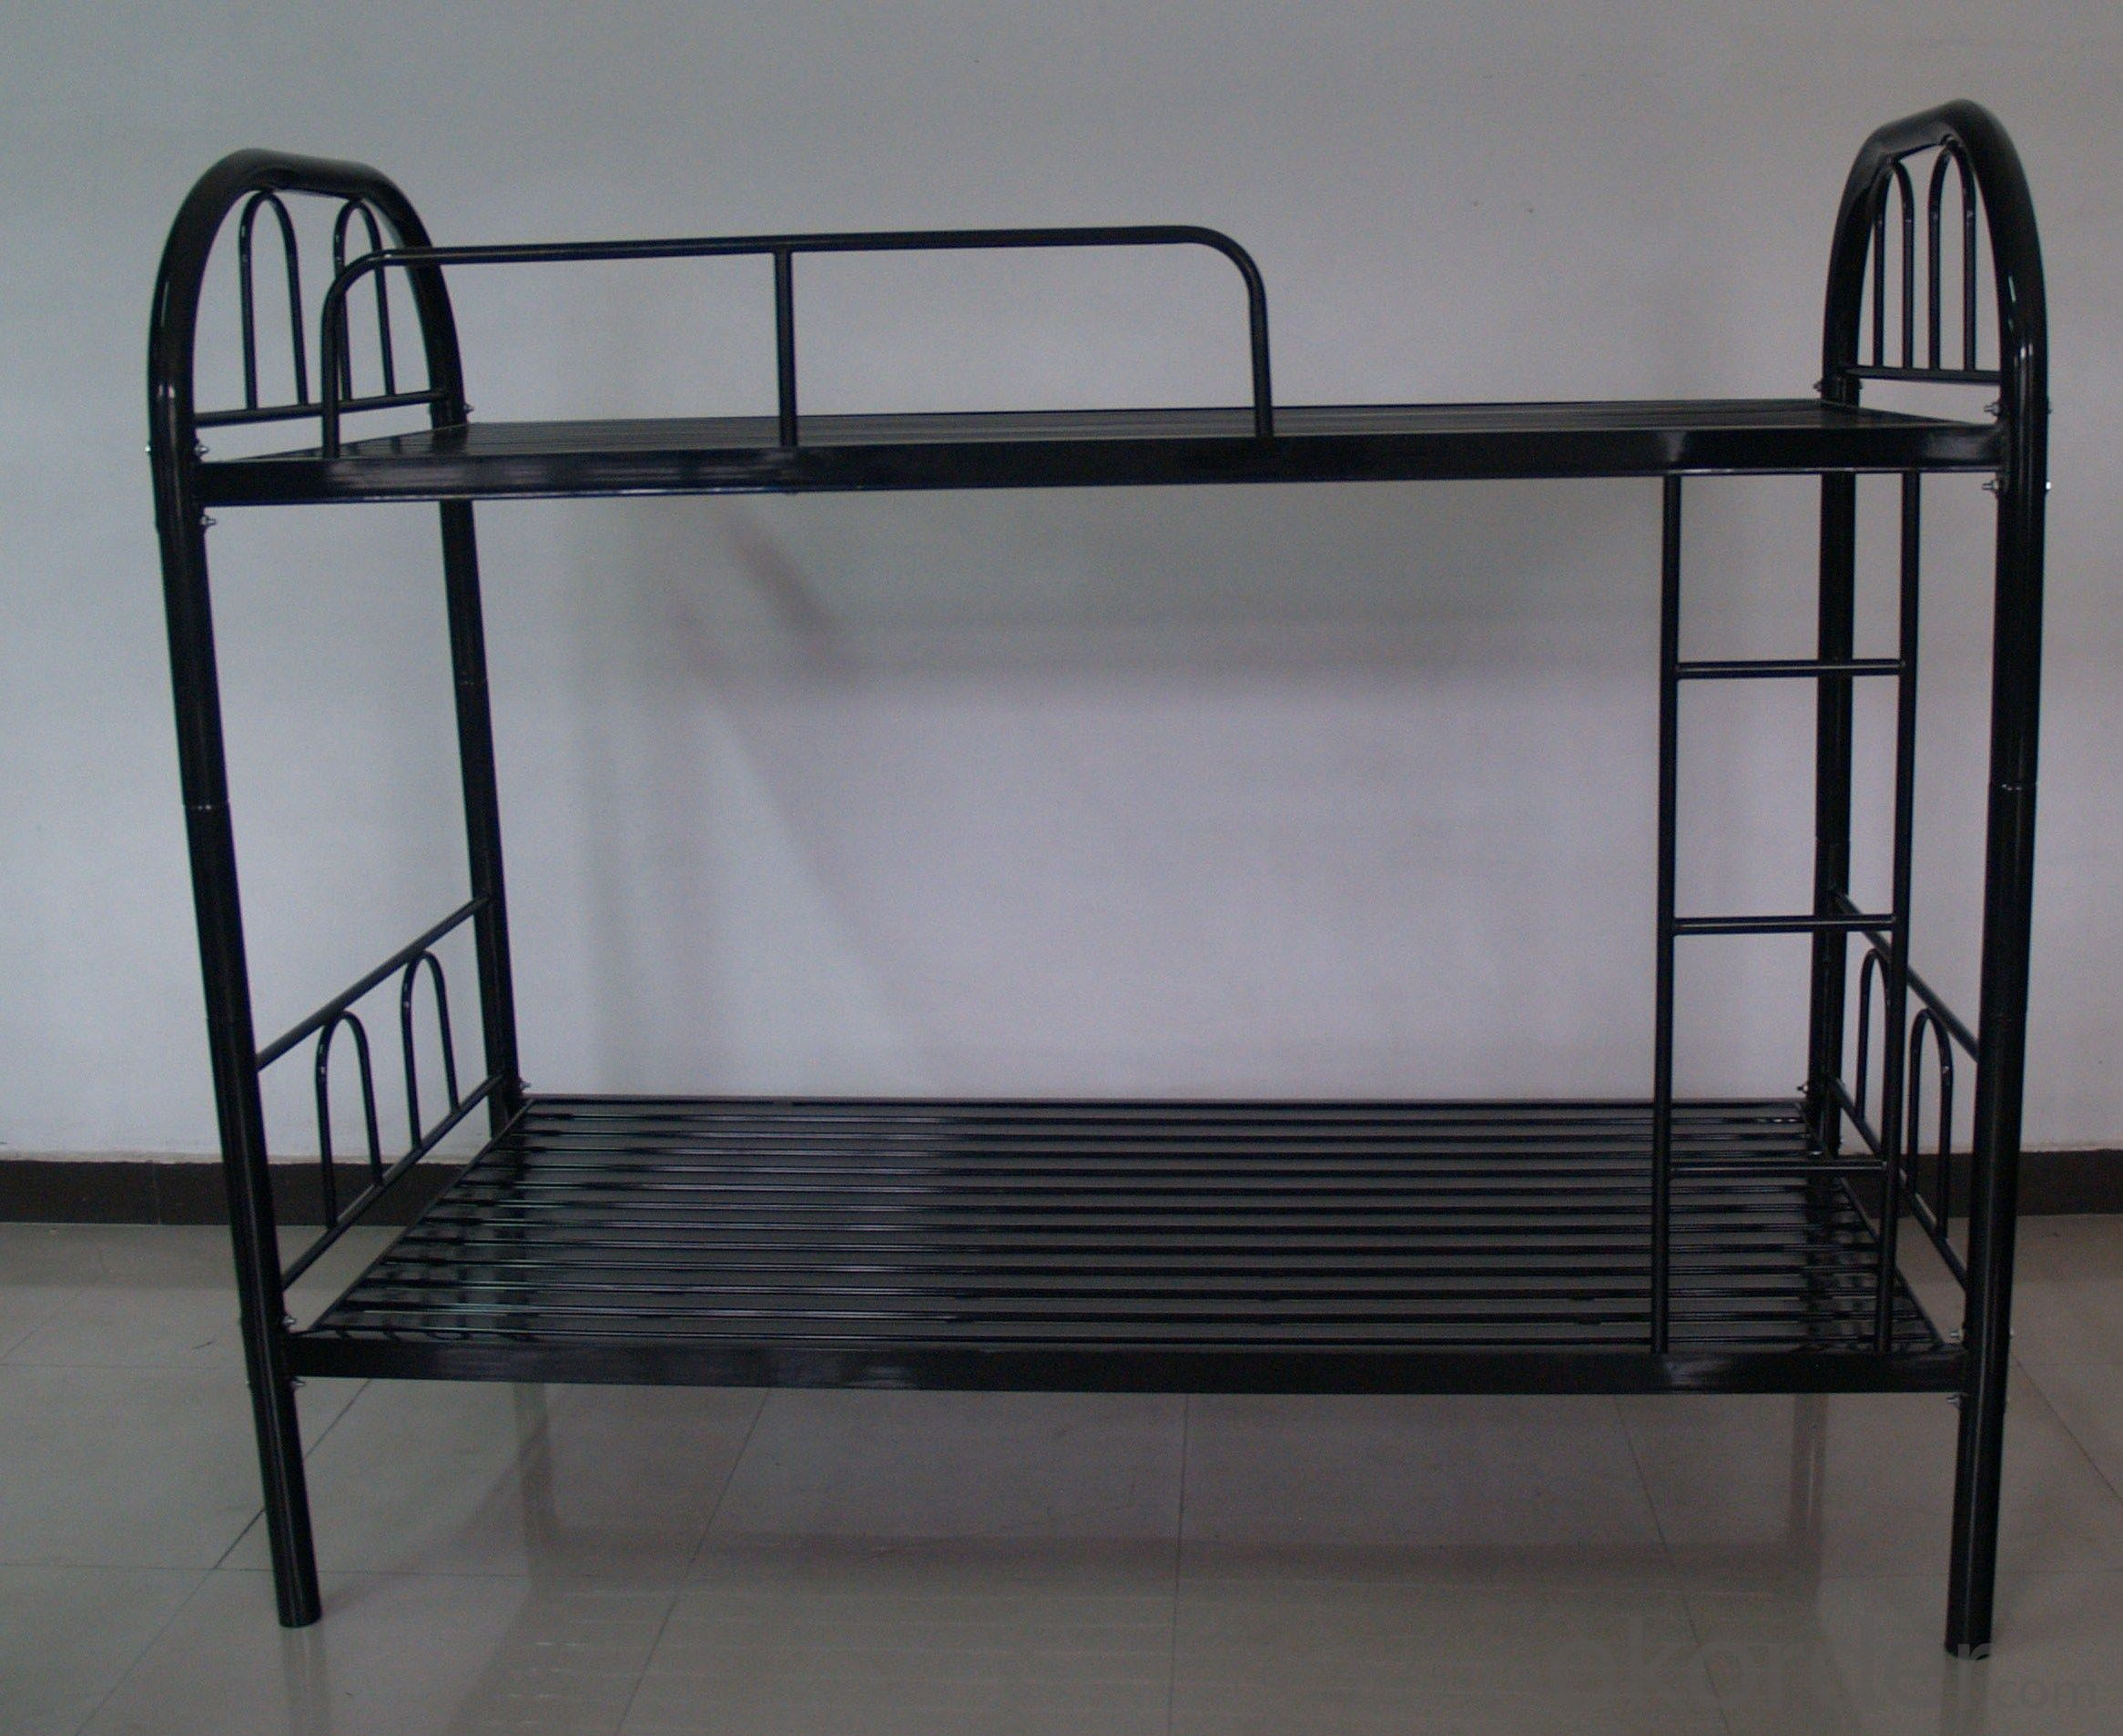 Hot Selling Labour Bed Heavy Duty Bunk Bed CMAX-A04 From Fortune Global 500 Company